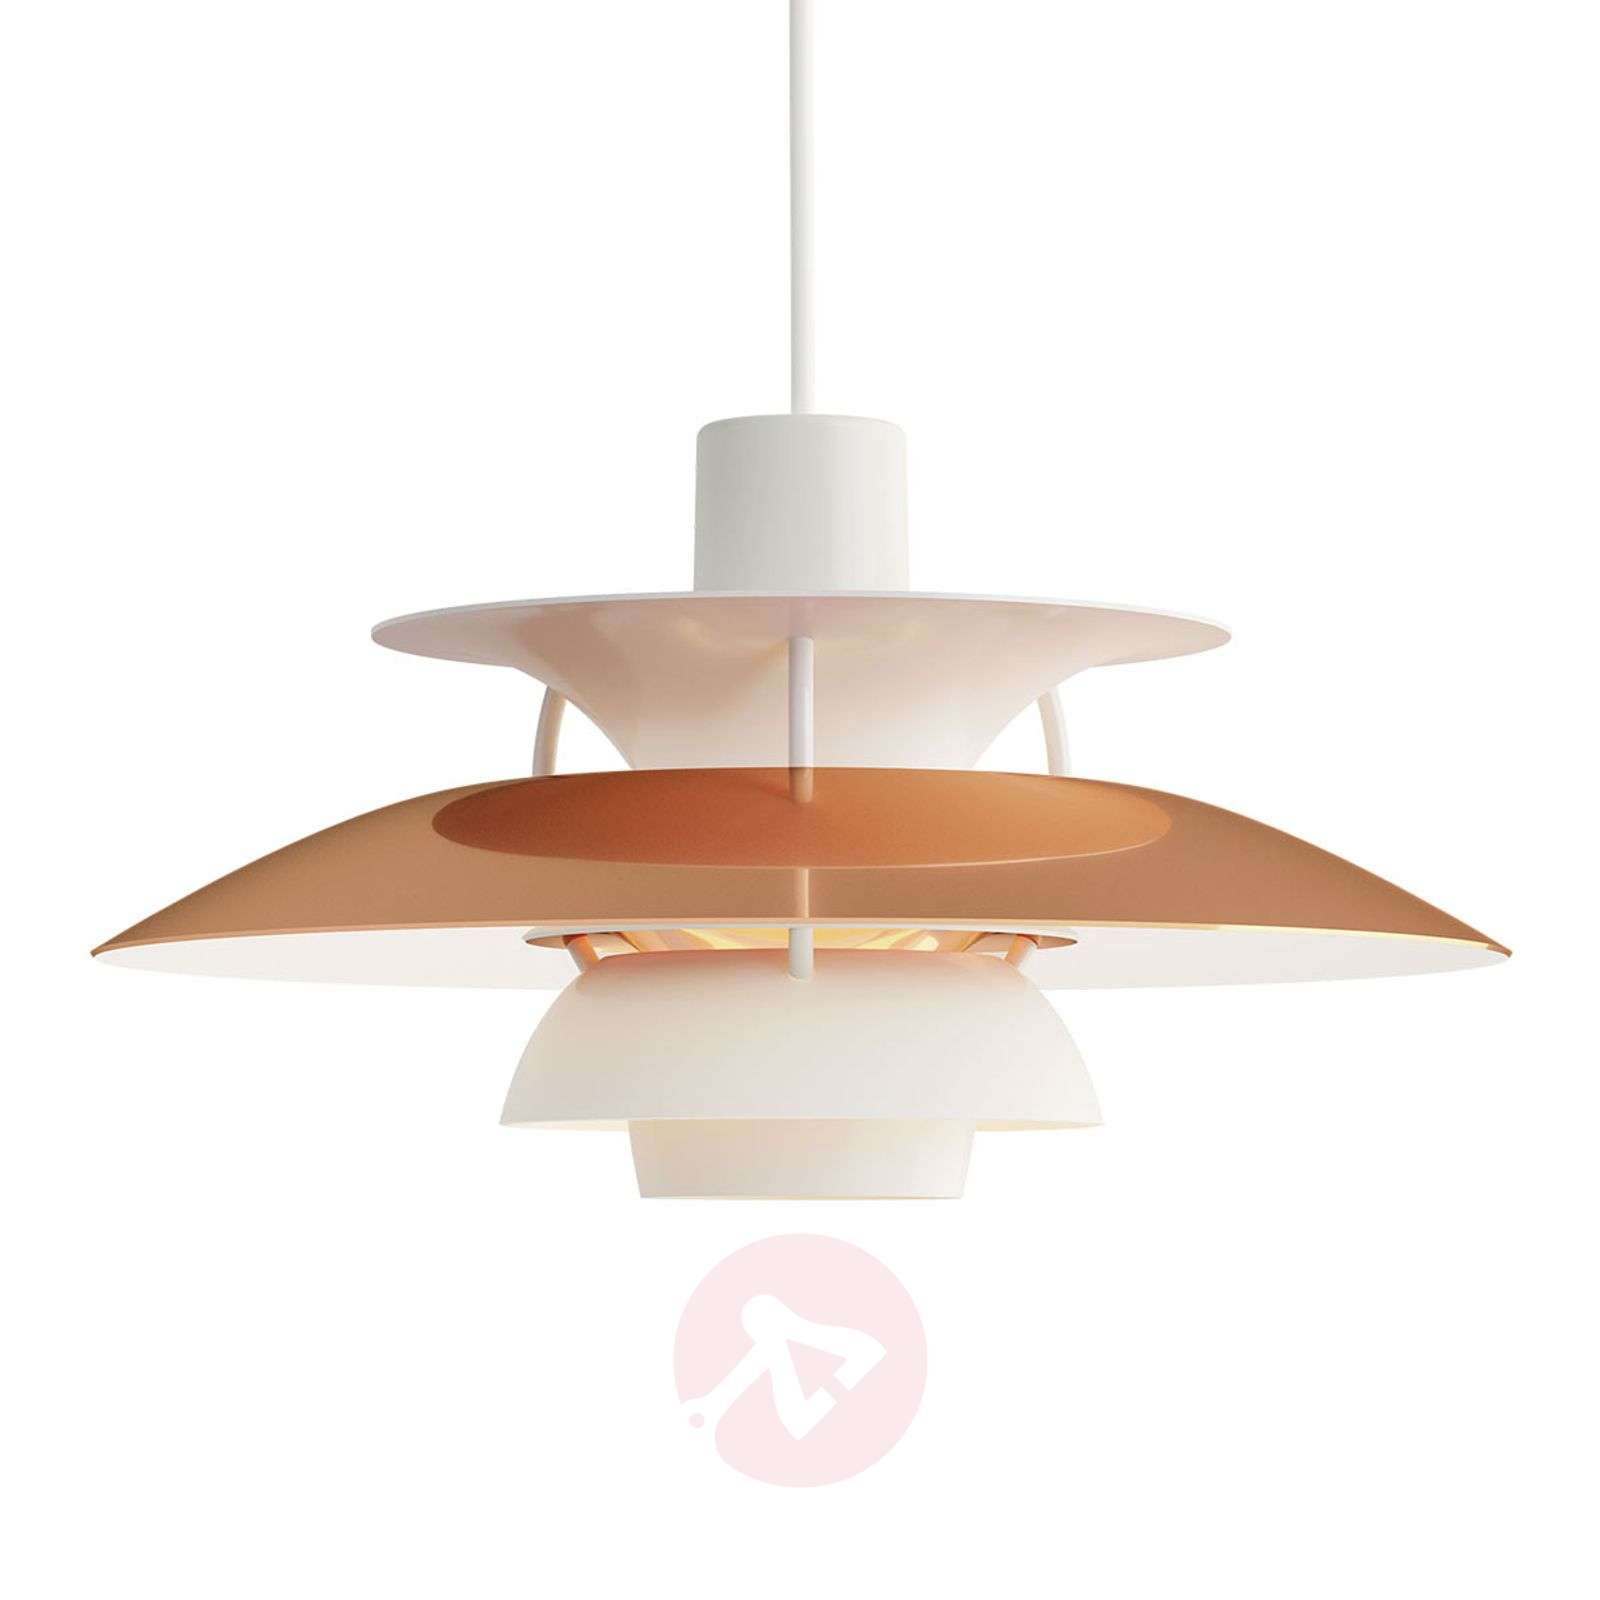 Louis Poulsen PH5 Mini Copper lampa wisząca Ø 30cm